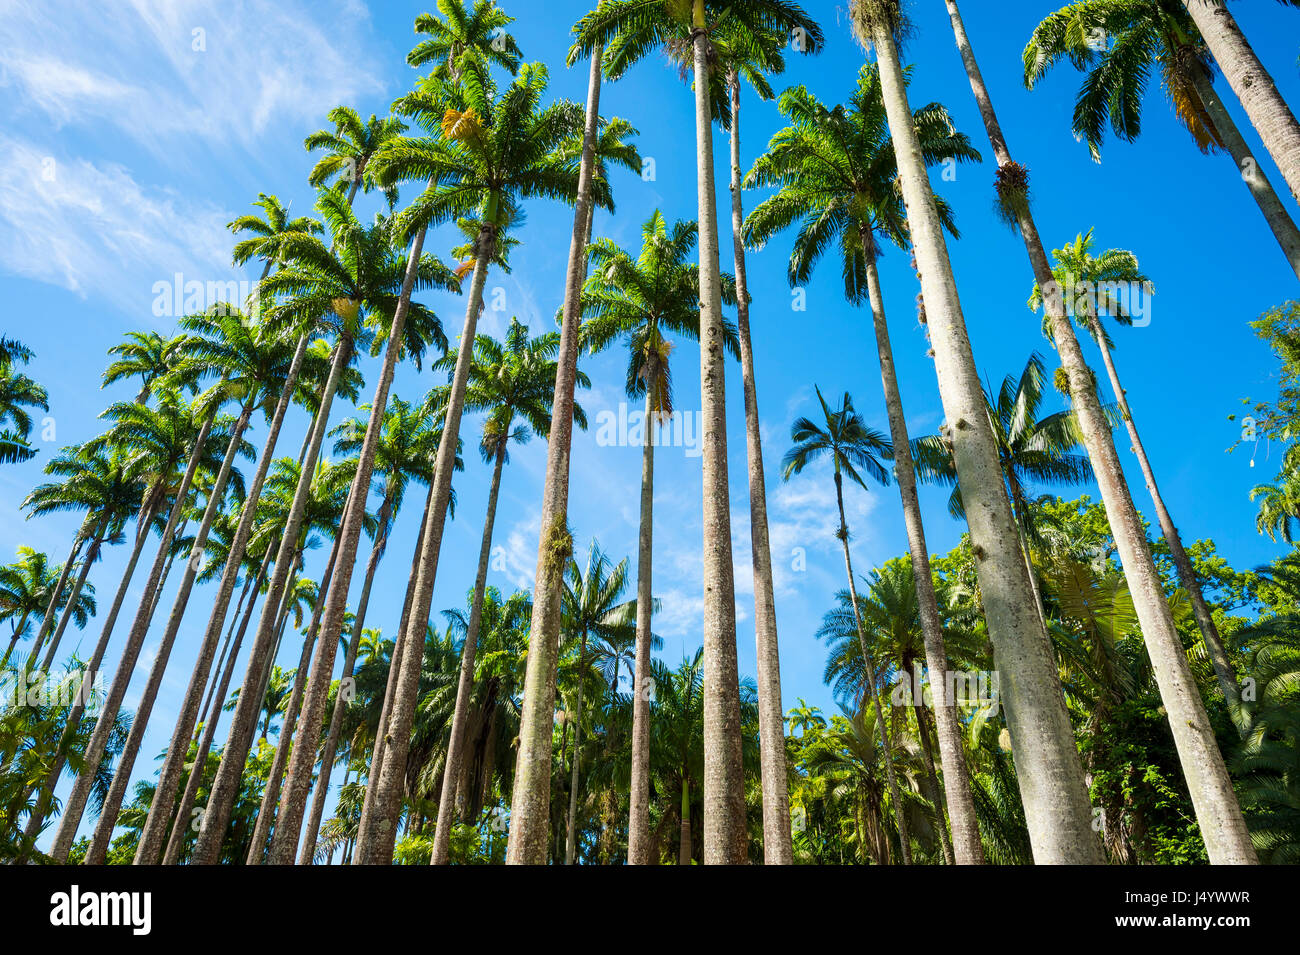 Royal palm trees soar into bright tropical sky in a dramatic alignment in Rio de Janeiro, Brazil - Stock Image